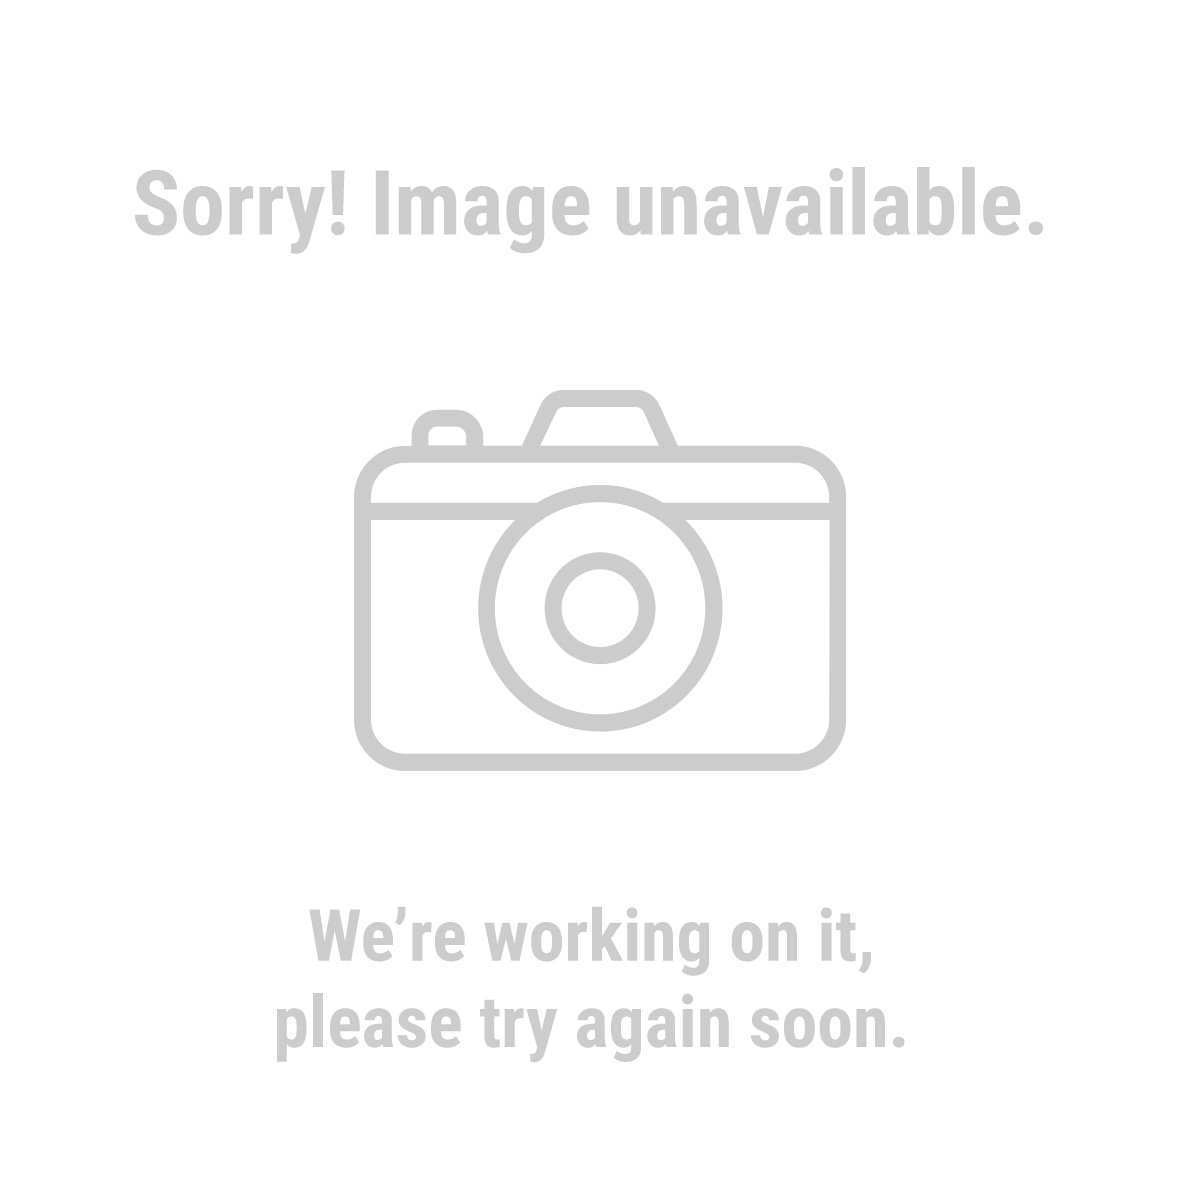 Feit Electric 65879 90 Watt Indoor/Outdoor Halogen Bulb